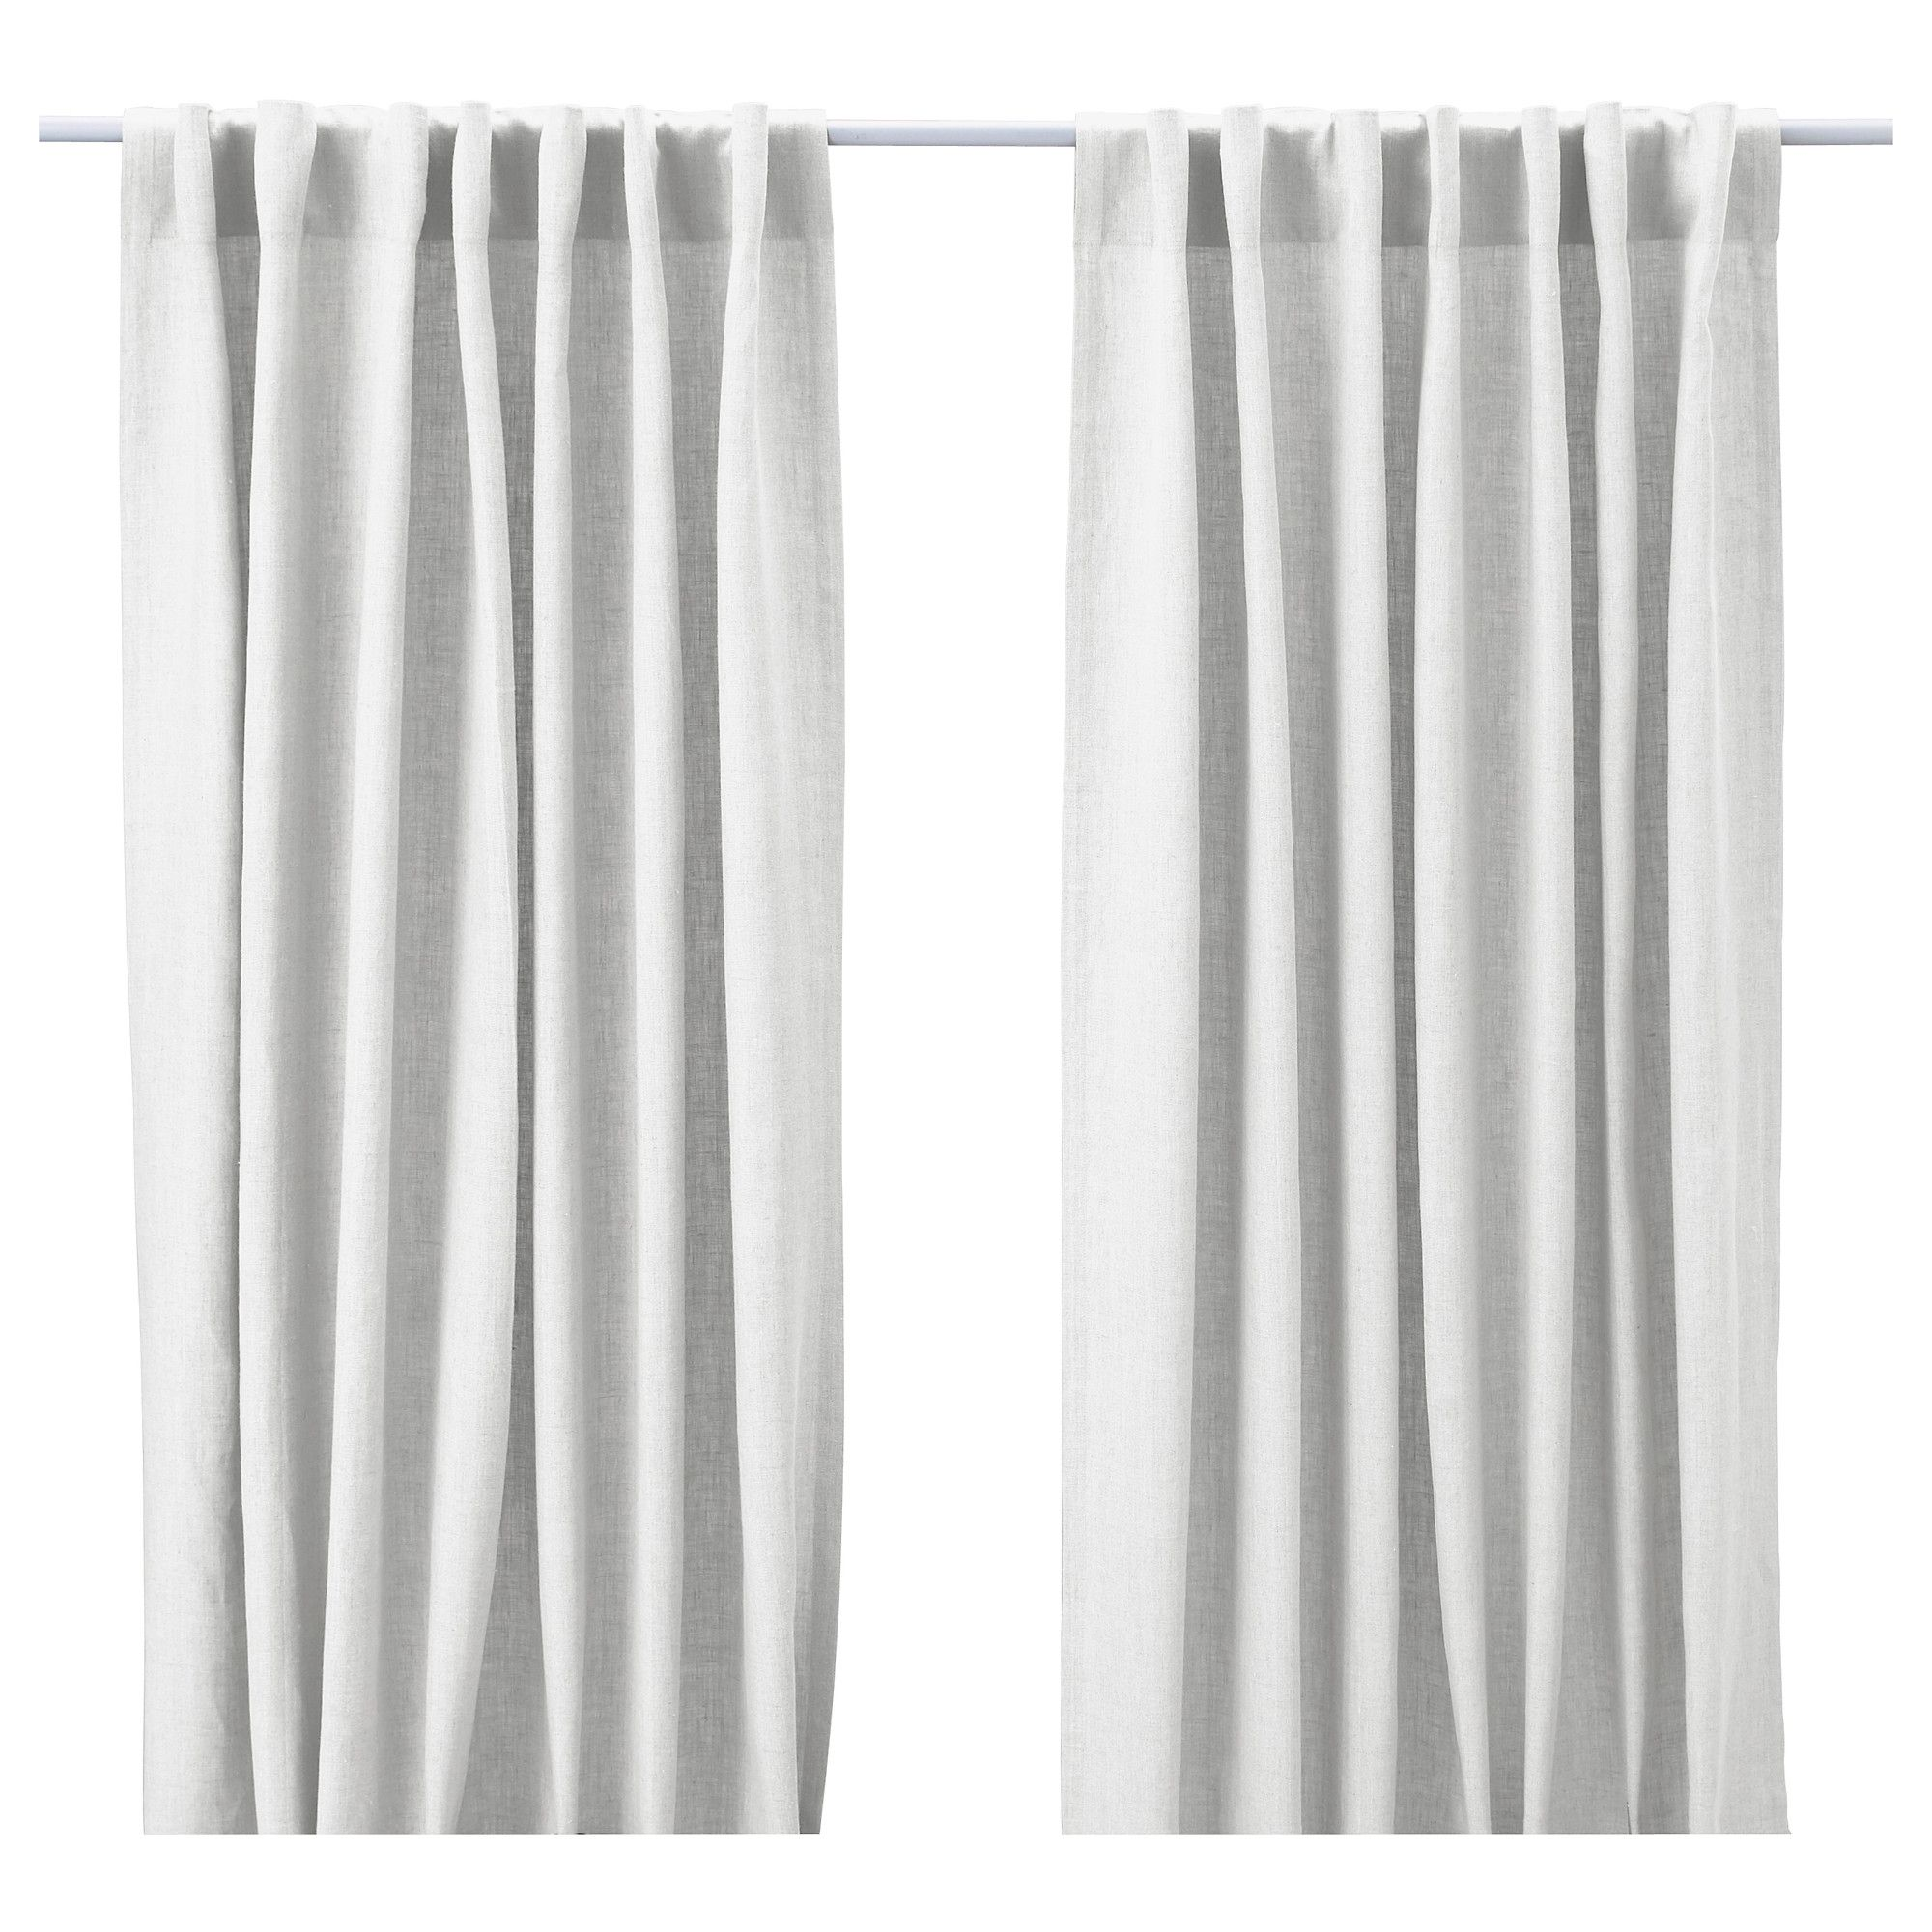 Ikea Us Furniture And Home Furnishings Grey Linen Curtains Curtains For Grey Walls Affordable Curtains